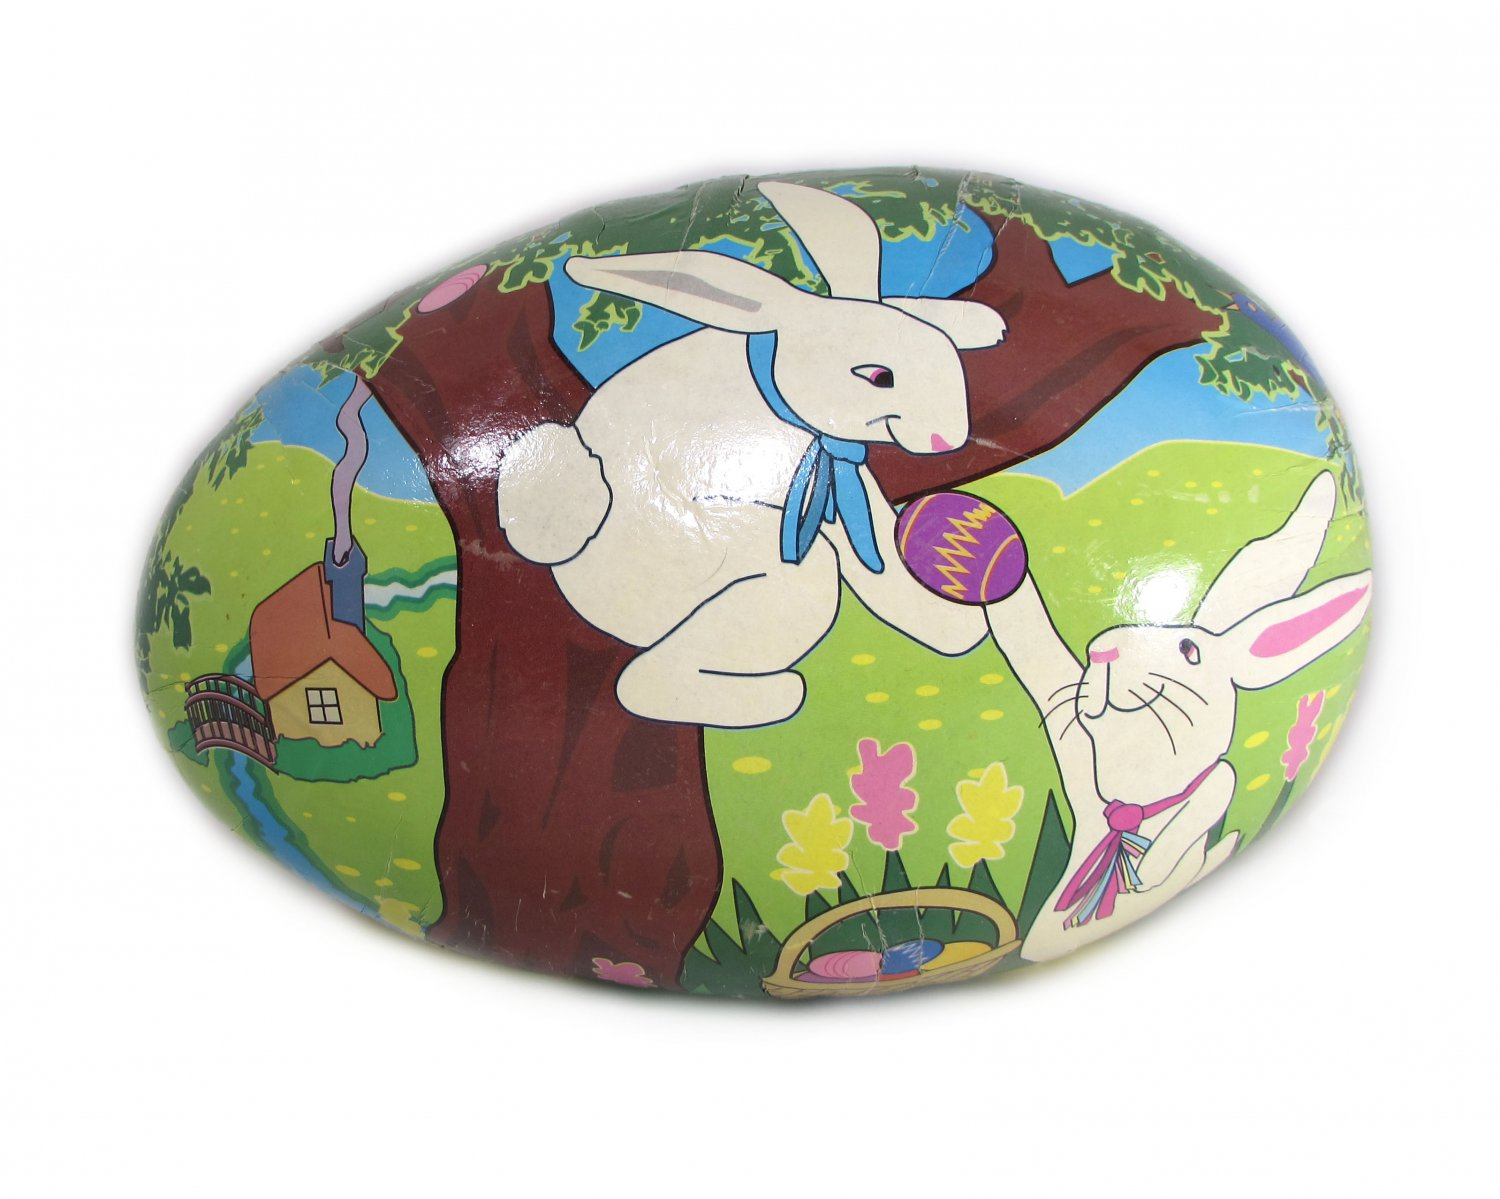 Large Paper Mache Easter Egg Filled with Plush Bunny Rabbit Illustrated R.G. Brown 12 inch